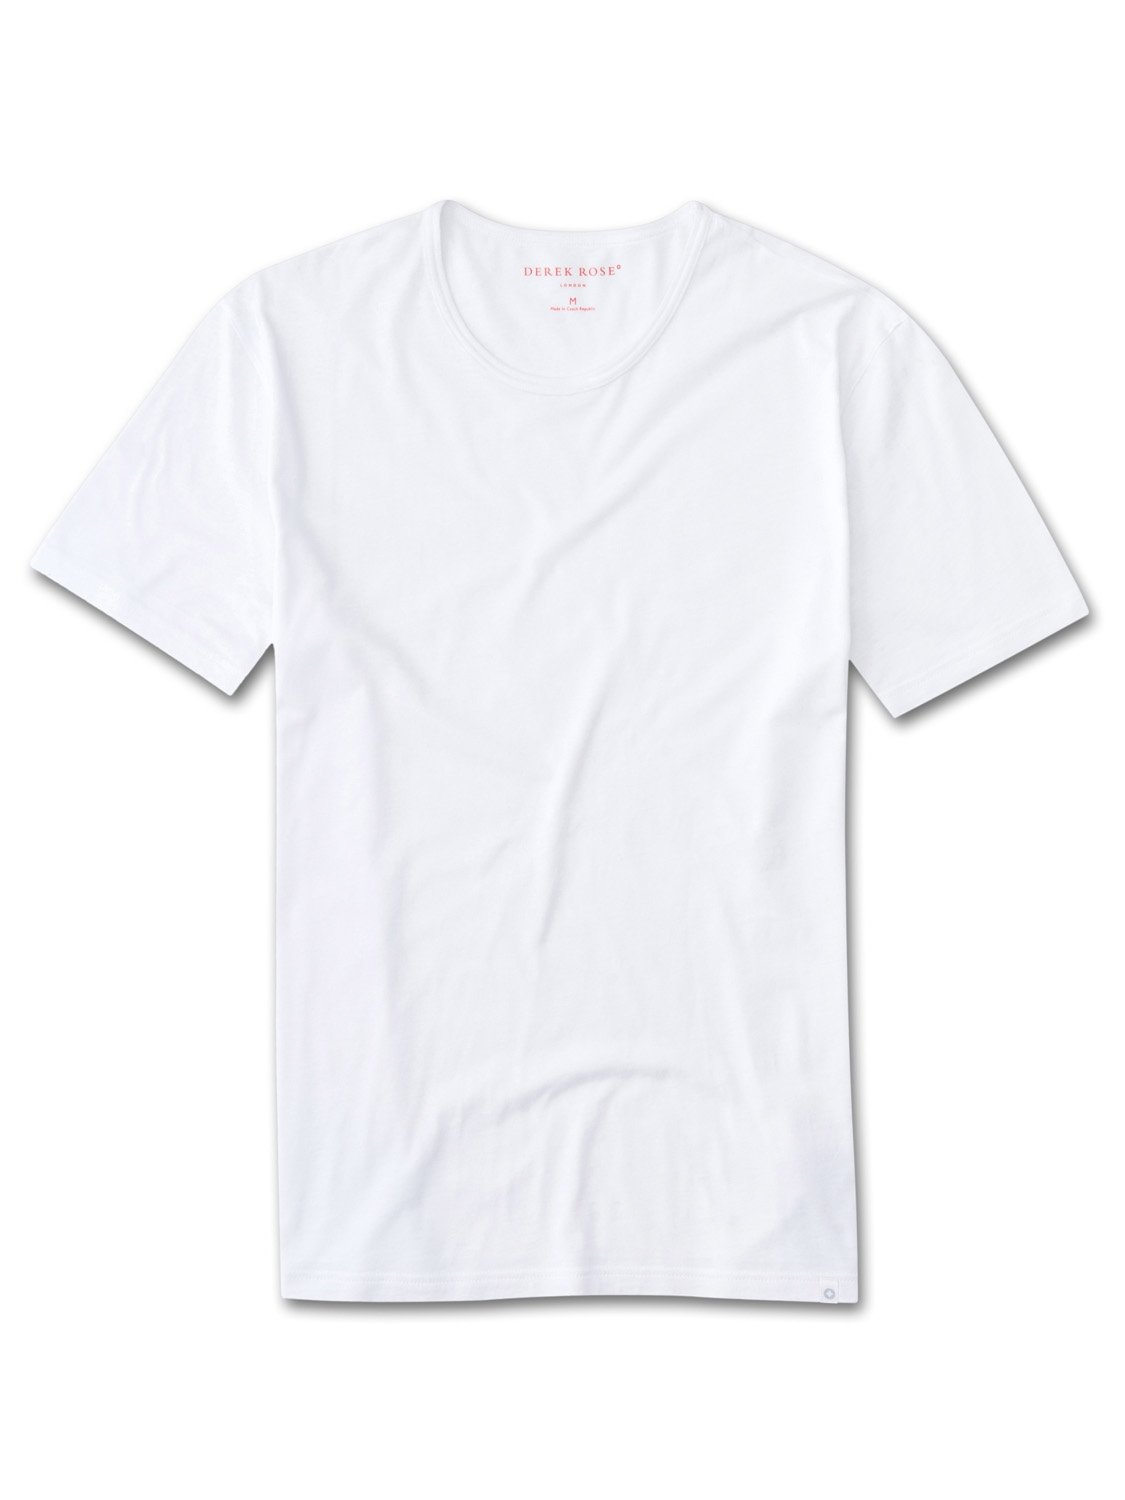 Men's Short Sleeve T-Shirt Riley Pima Cotton White